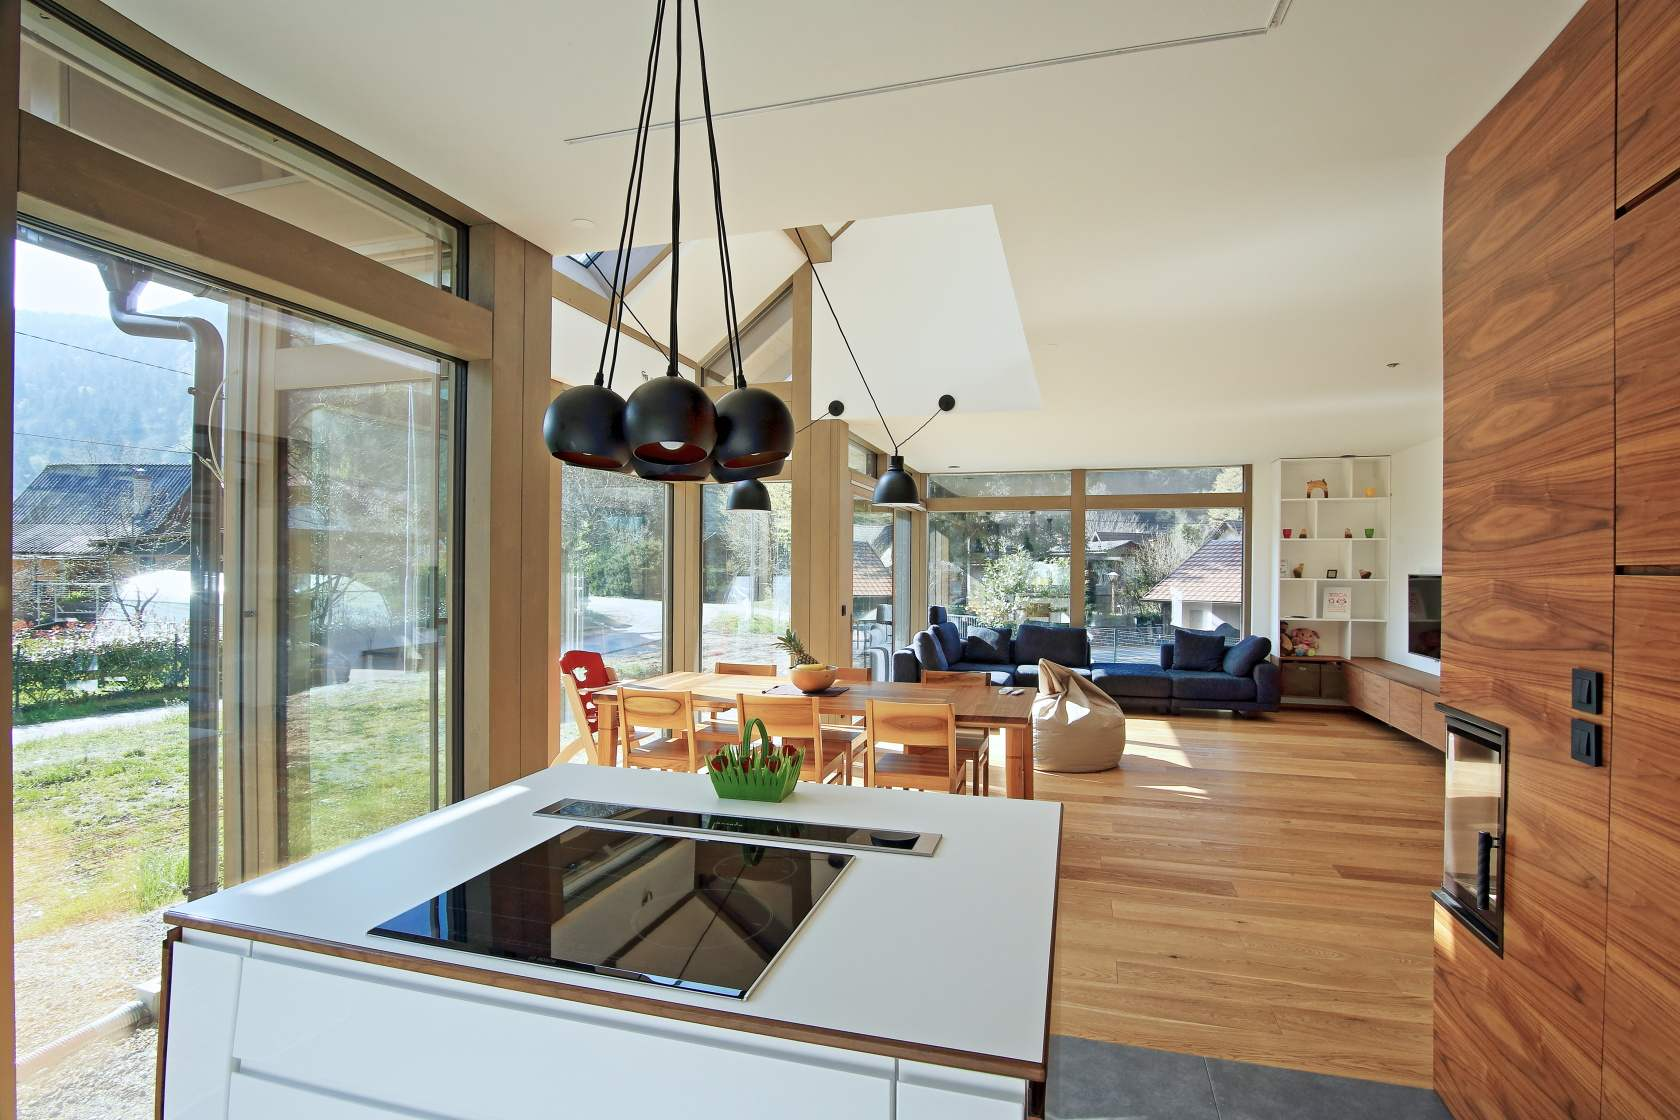 Fusion of classic and modern